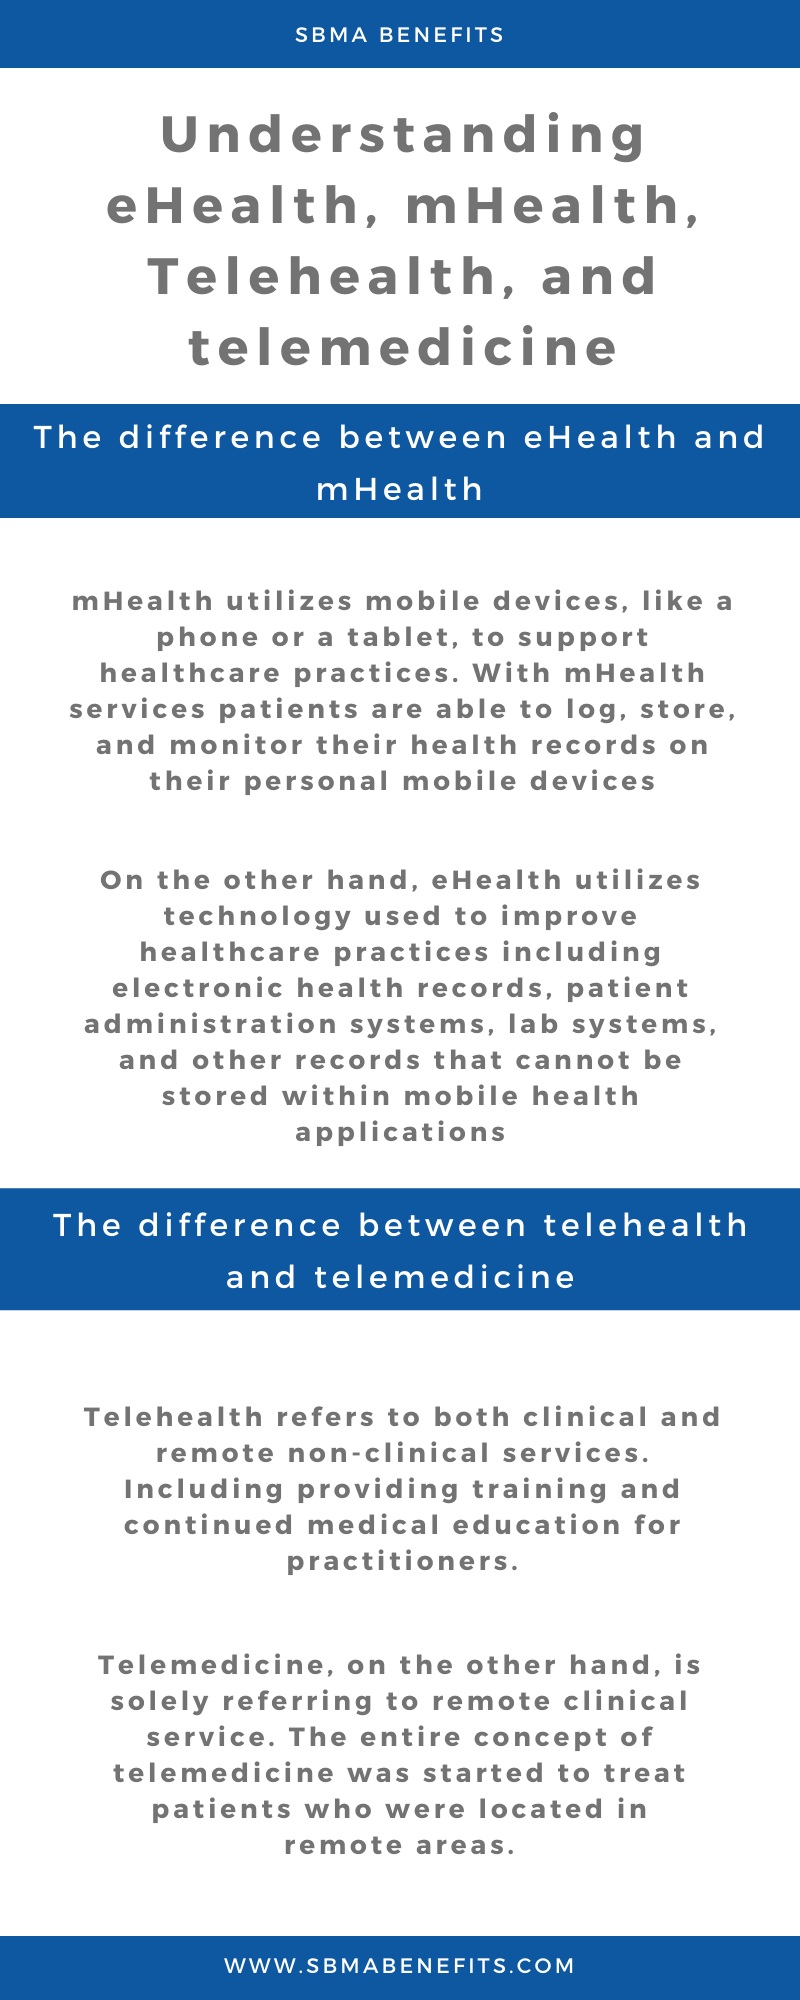 What is the difference between mHealth, eHealth, telehealth, and telemedicine?